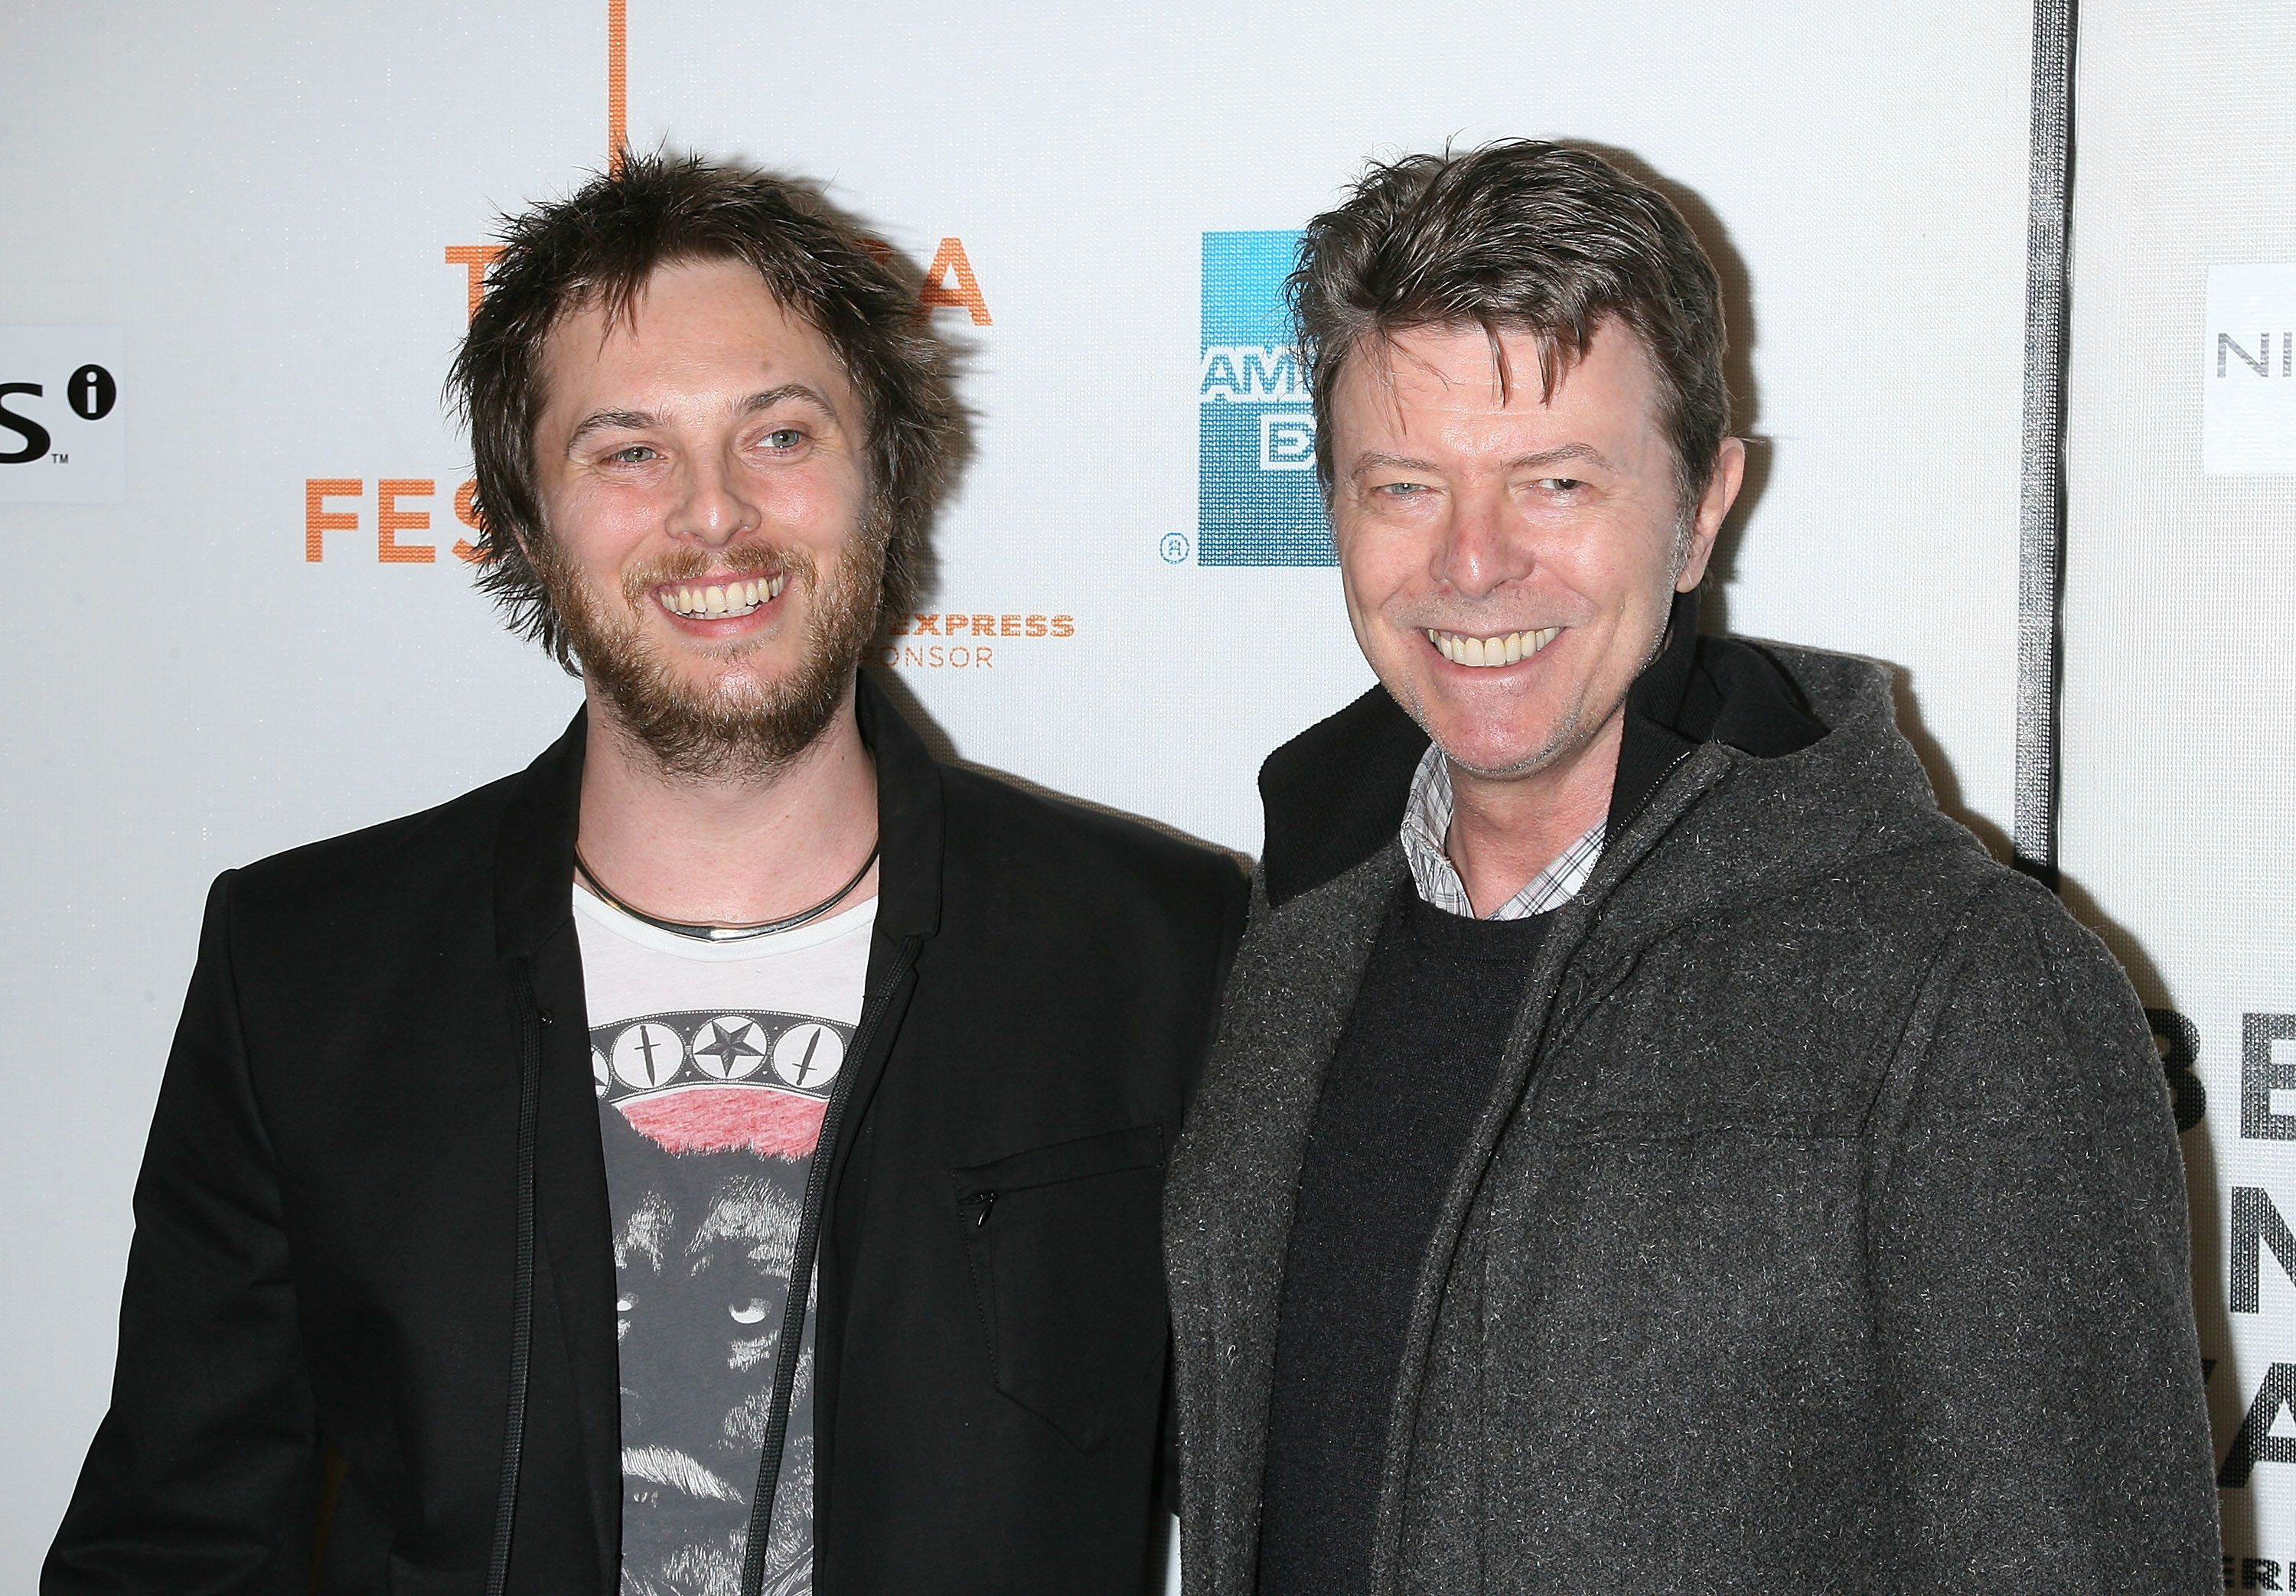 NEW YORK - APRIL 30:  Director Duncan Jones and Musician David Bowie attend the premiere of 'Moon' during the 8th Annual Tribeca Film Festival at BMCC Tribeca Performing Arts Center on April 30, 2009 in New York City.  (Photo by Jim Spellman/WireImage)